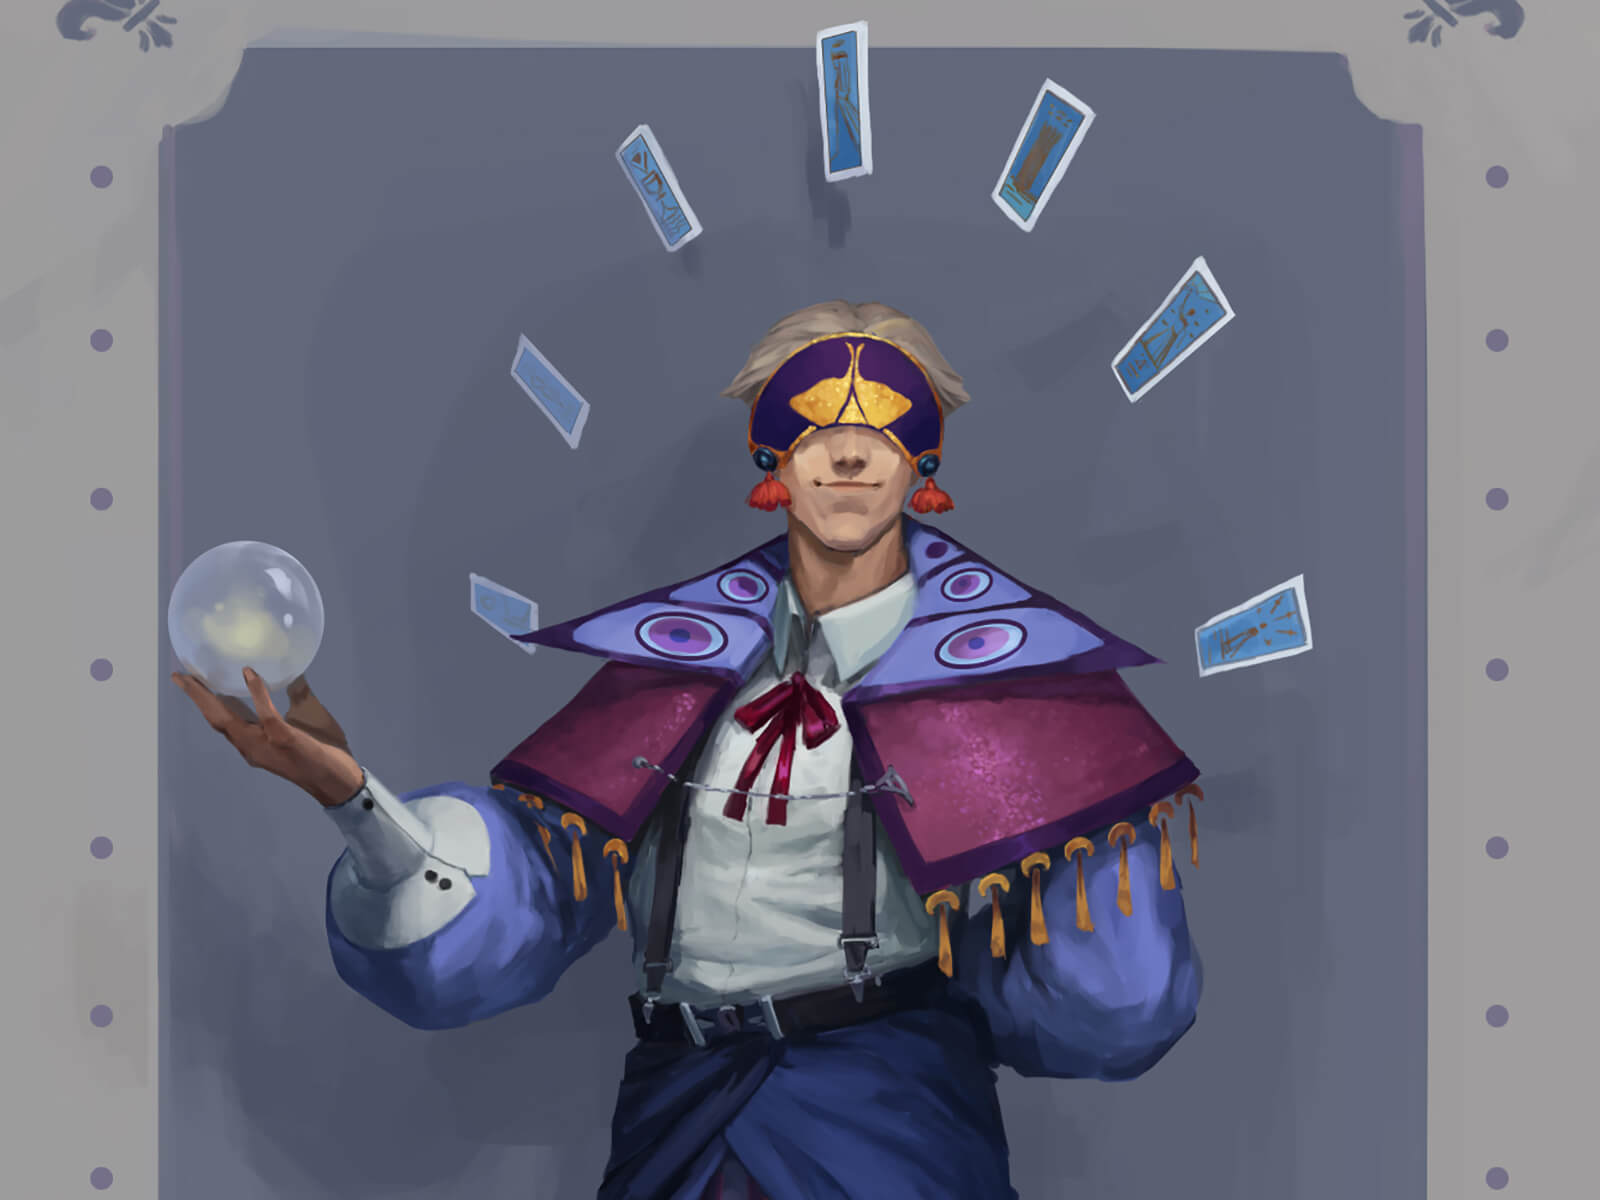 A masked character in a tasseled purple cape carrying a crystal ball